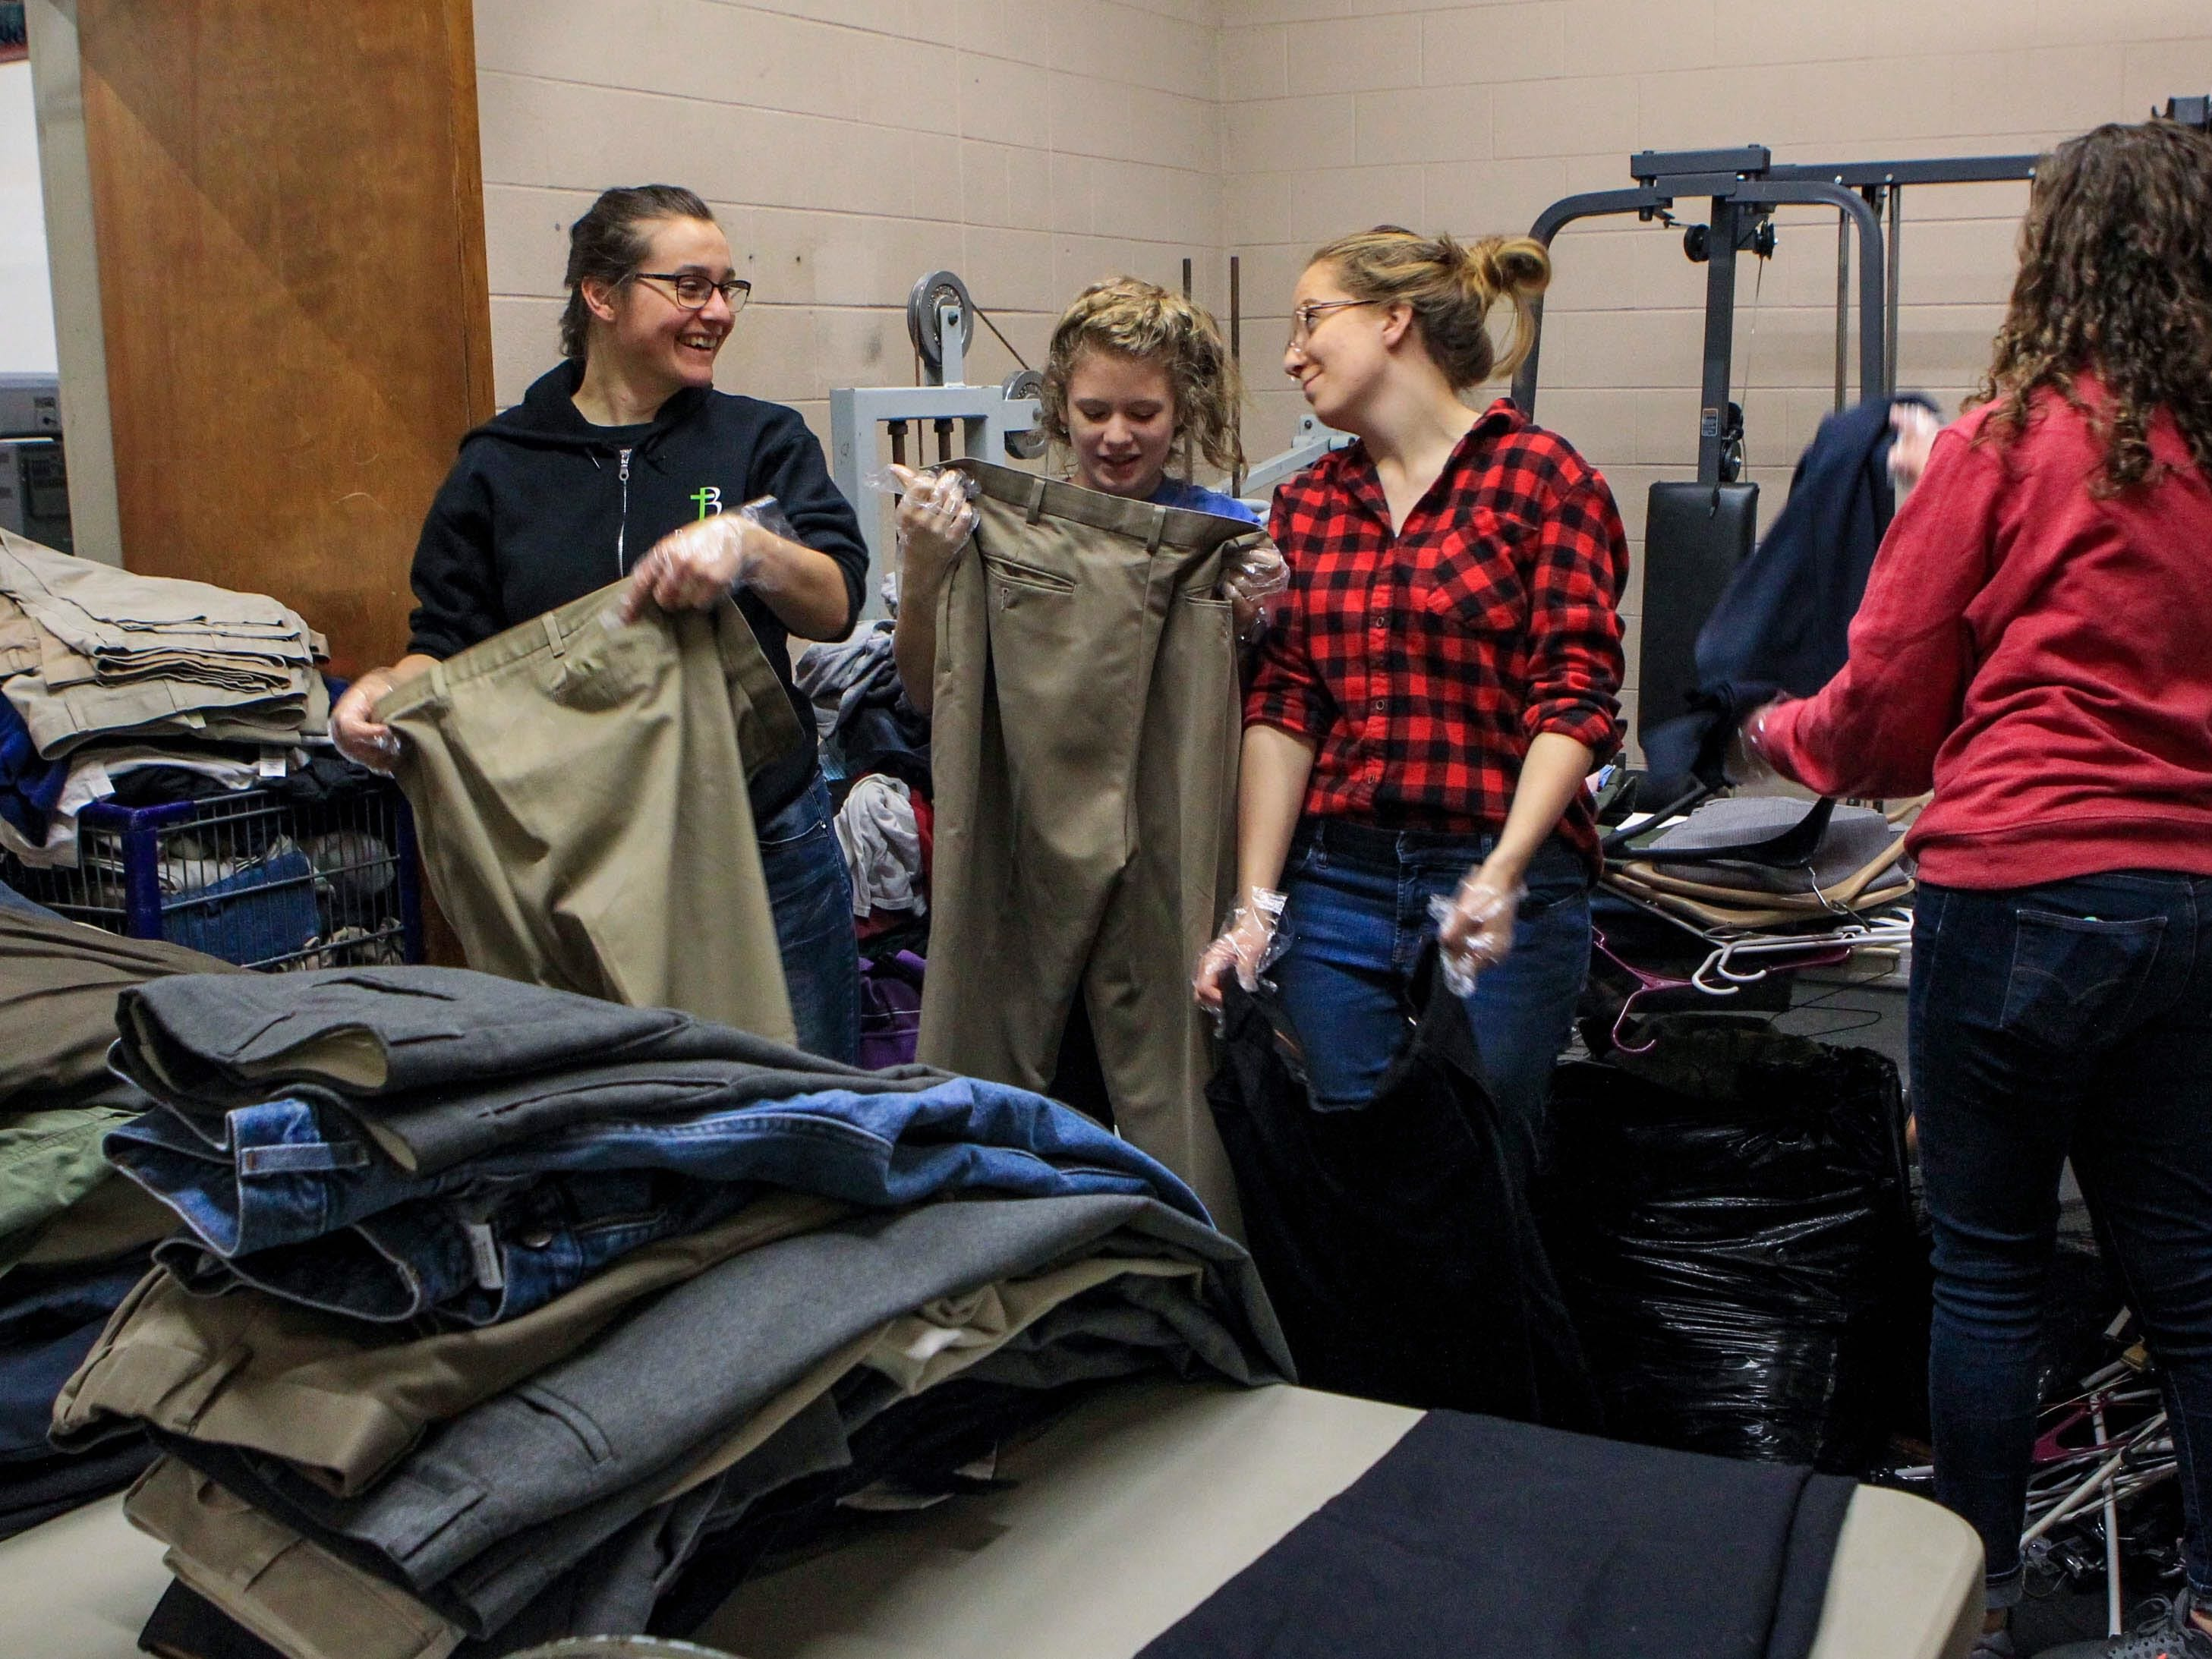 Suzanna Millington, a junior, Taylor Holland, a sophomore, Karen Mee, a sophomore, and Jennifer Naas, a sophomore, sort through pants by sizes at Miracle HillÕs Greenville Rescue Mission on Martin Luther King, Jr. Day Monday, Jan. 21, 2019.